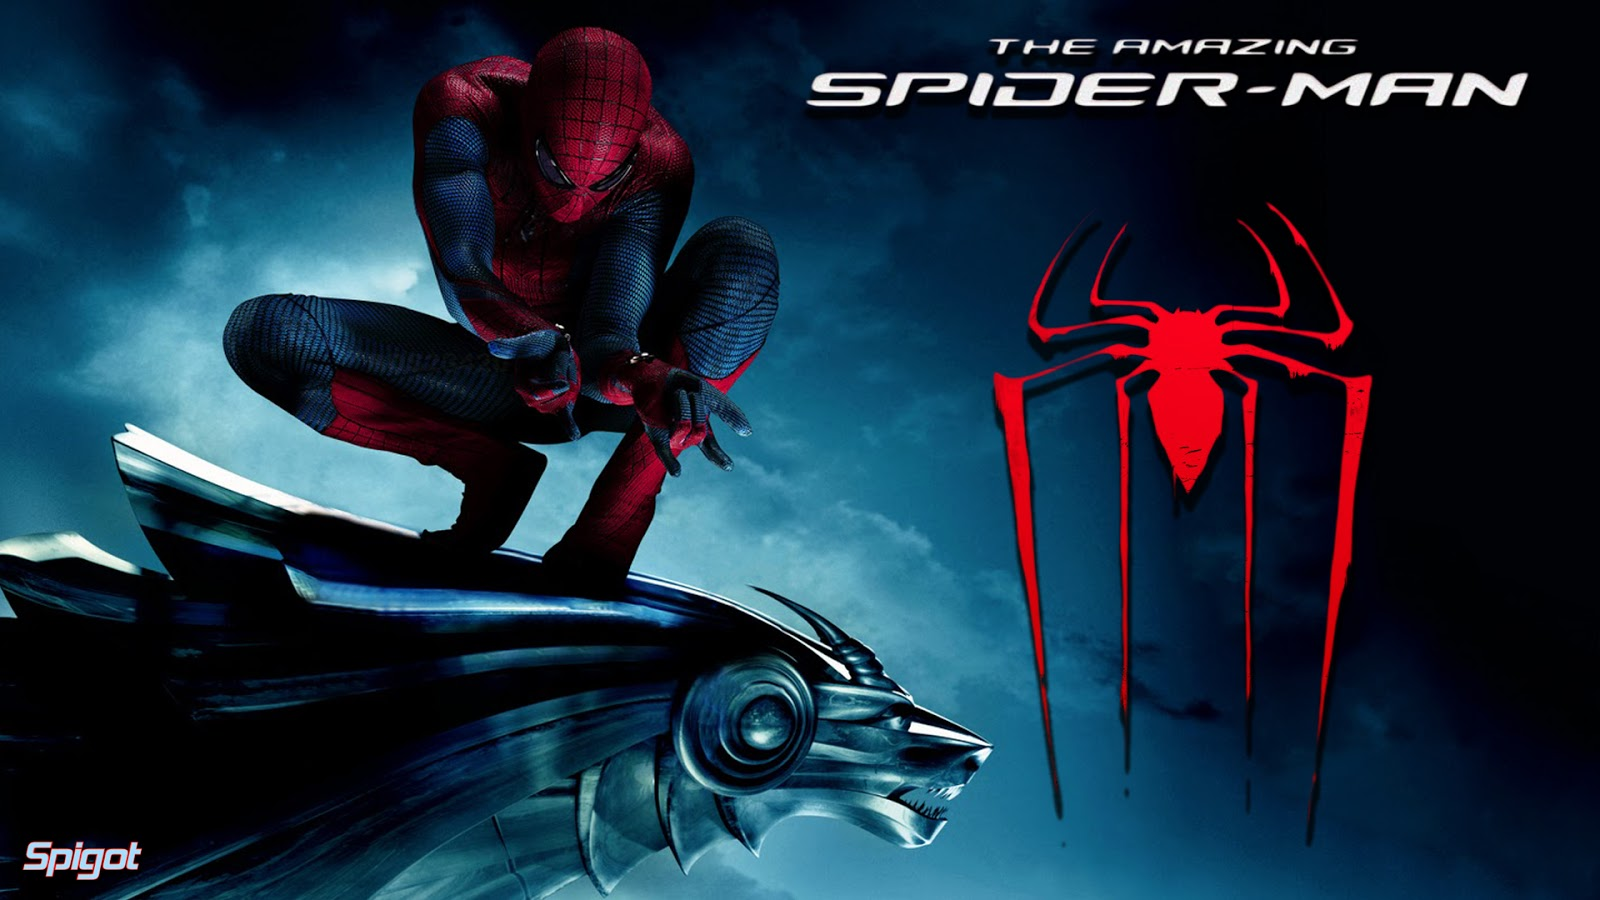 Amazing Spiderman Wallpaper HD Mobile